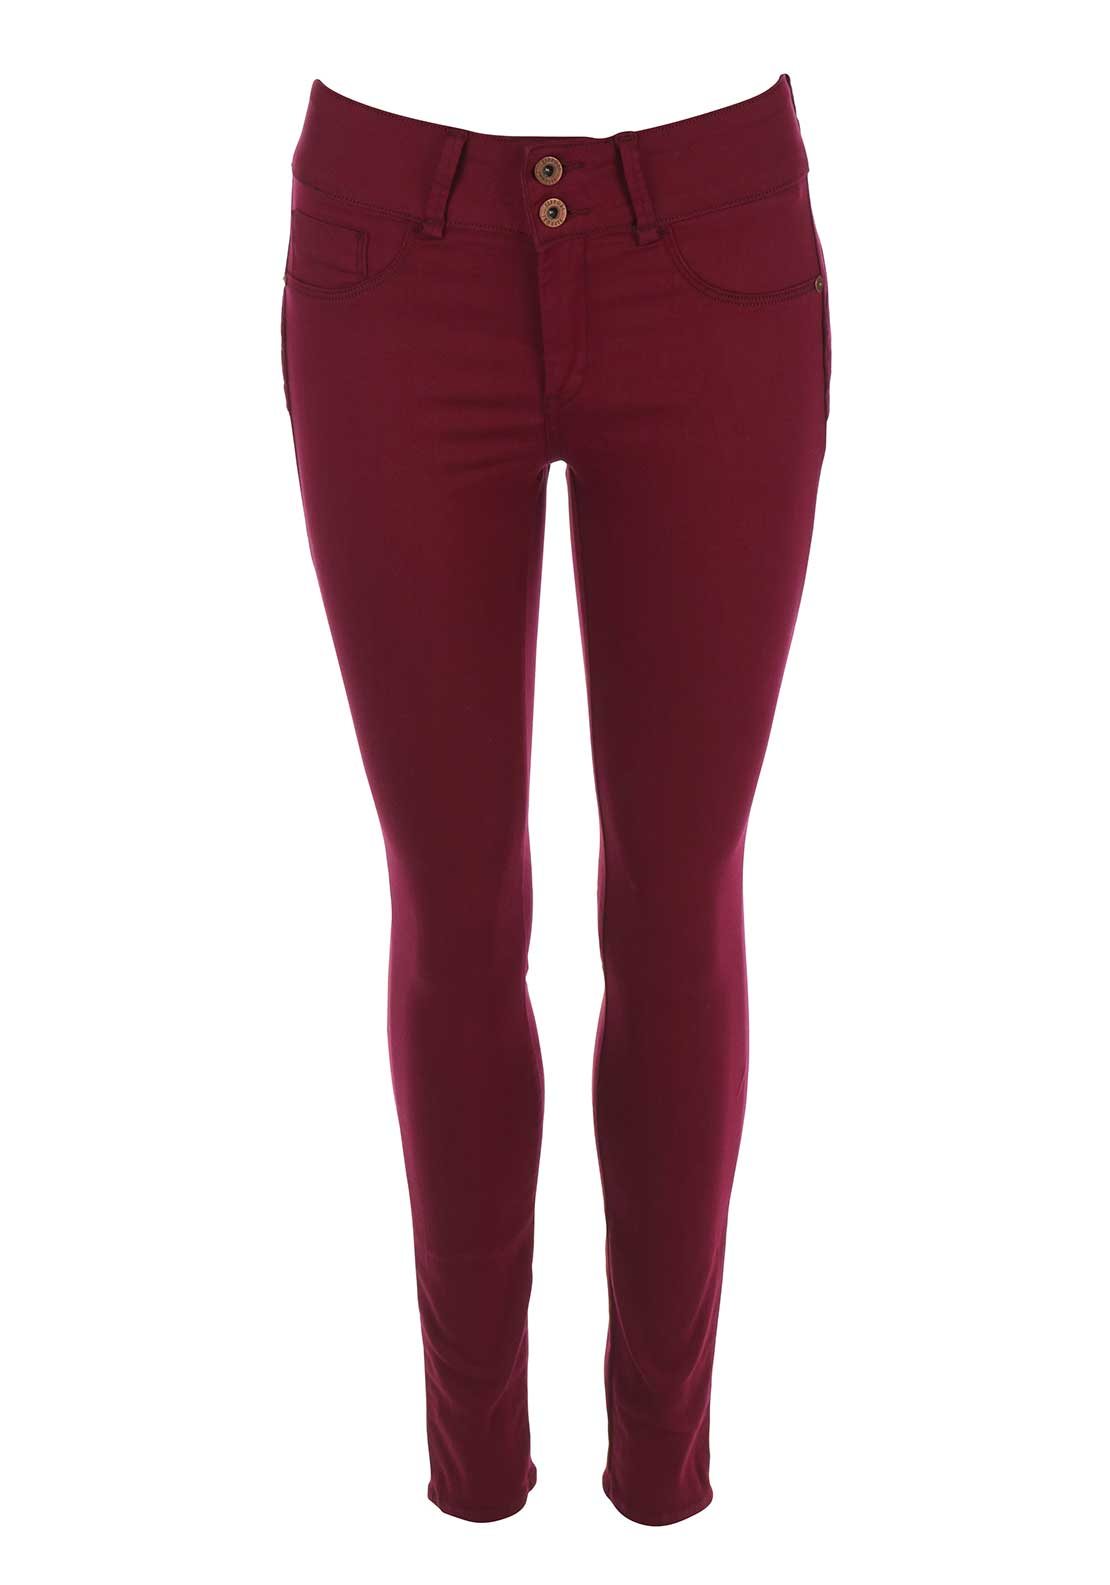 Tiffosi Womens One Size Double Up Skinny Jeans, Dark Red